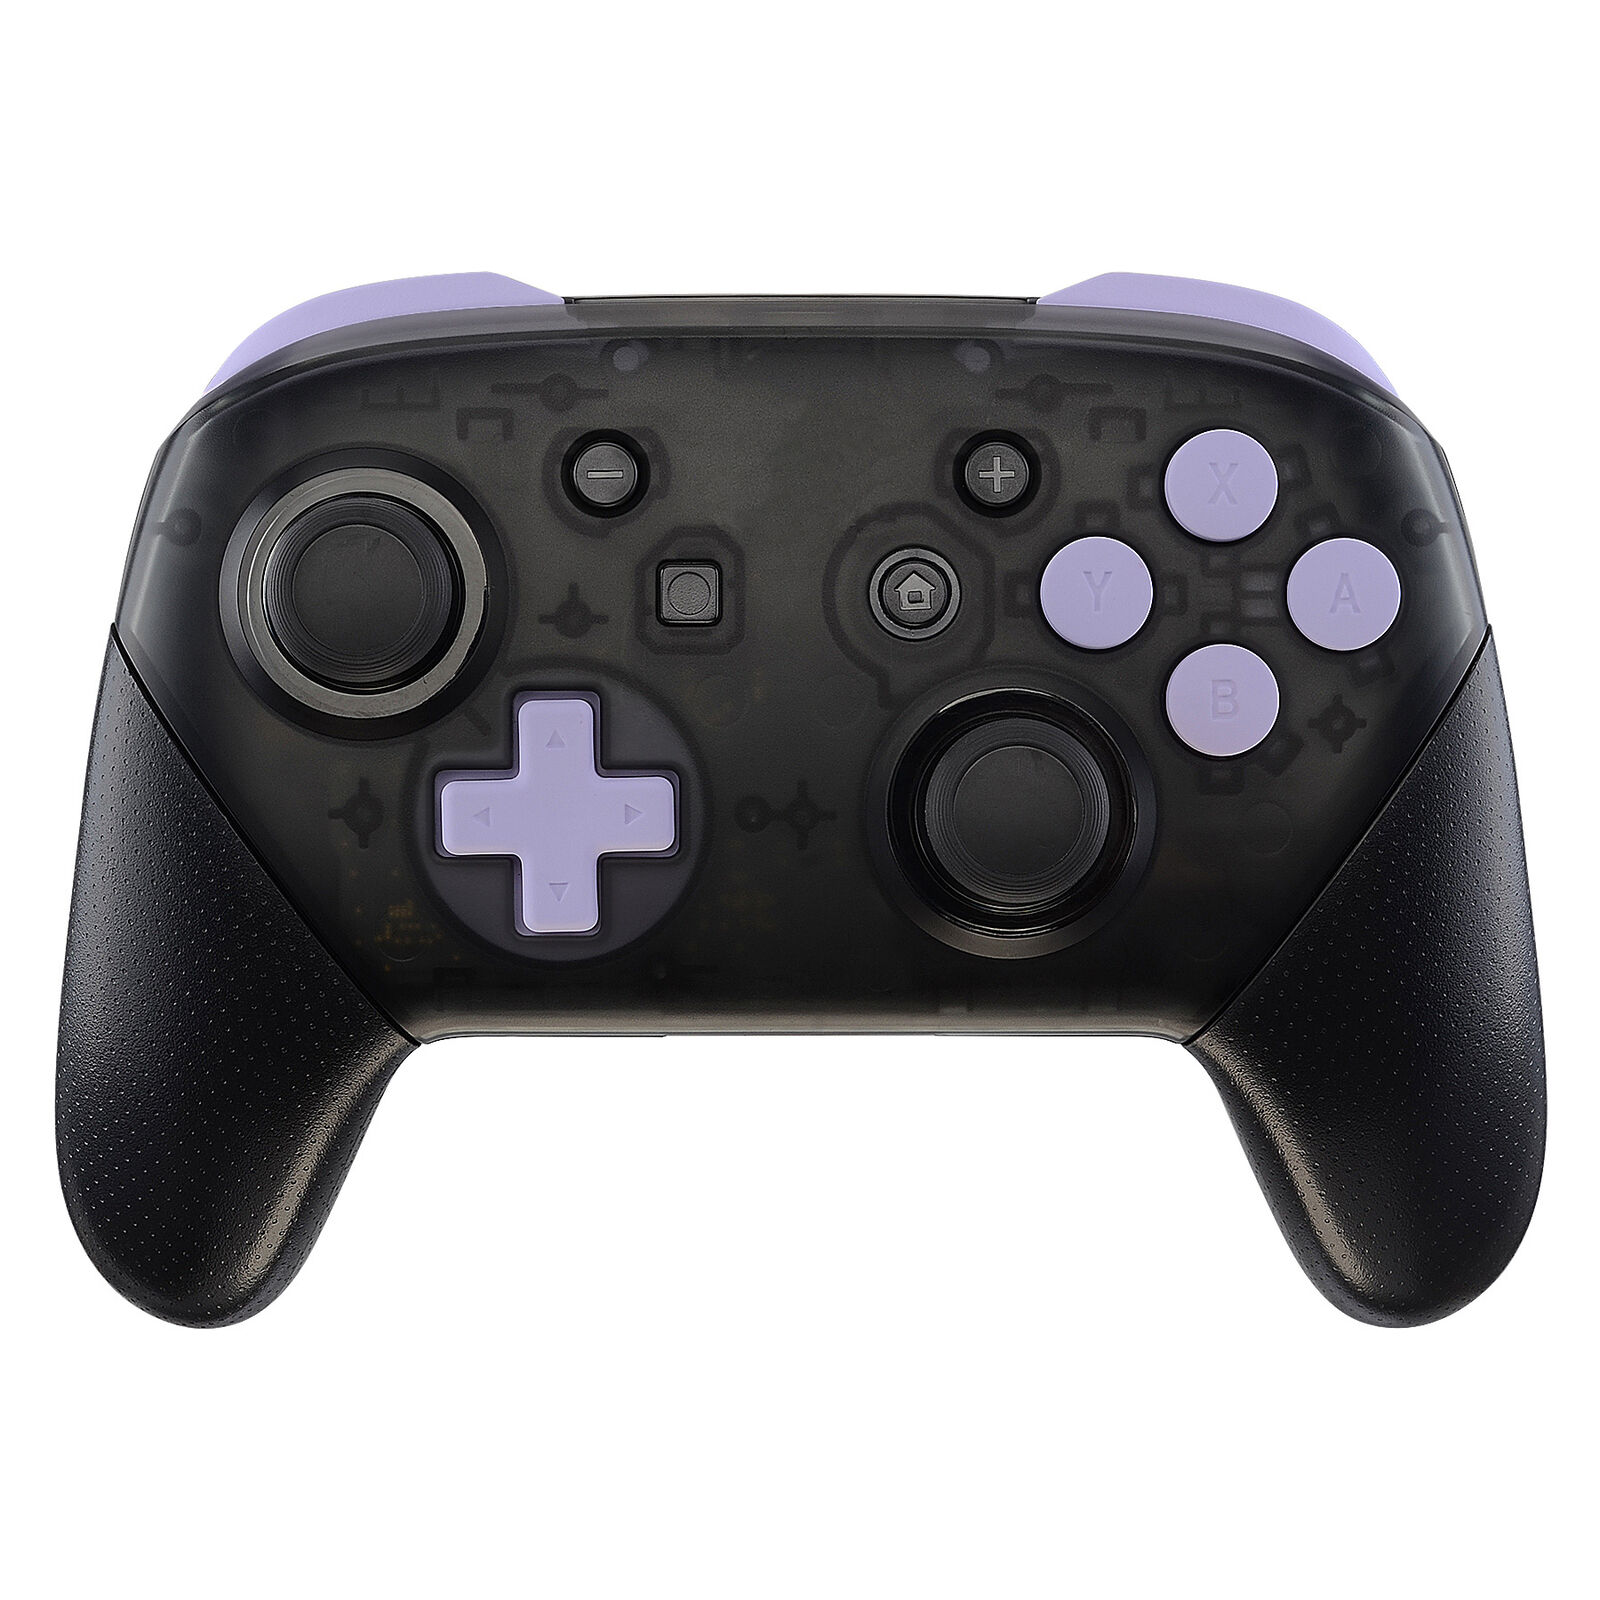 Nintendo Switch Pro Controller Black and Lavender Buttons